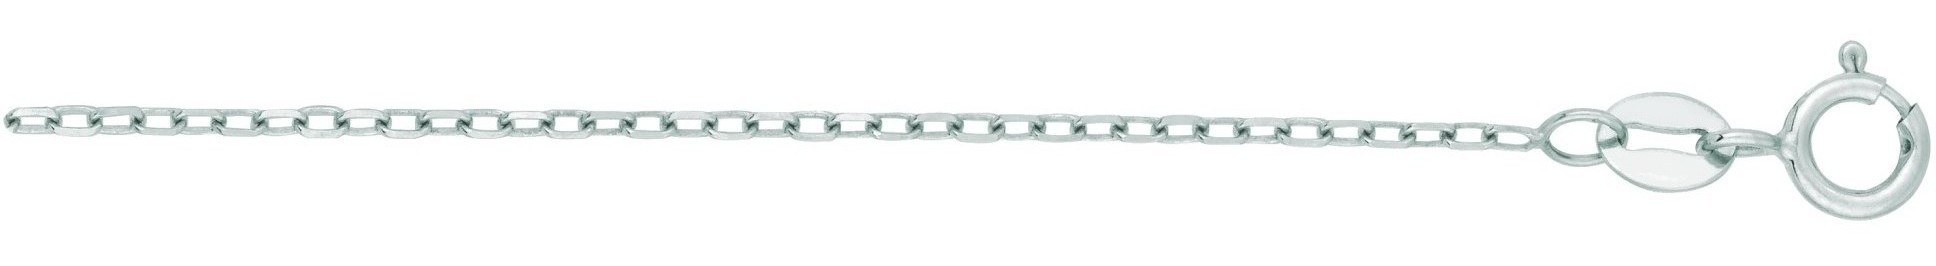 "16"" 14K White Gold 1.3mm (0.05"") Polished Diamond Cut Faceted Cable Link Chain w/ Spring Ring Clasp"